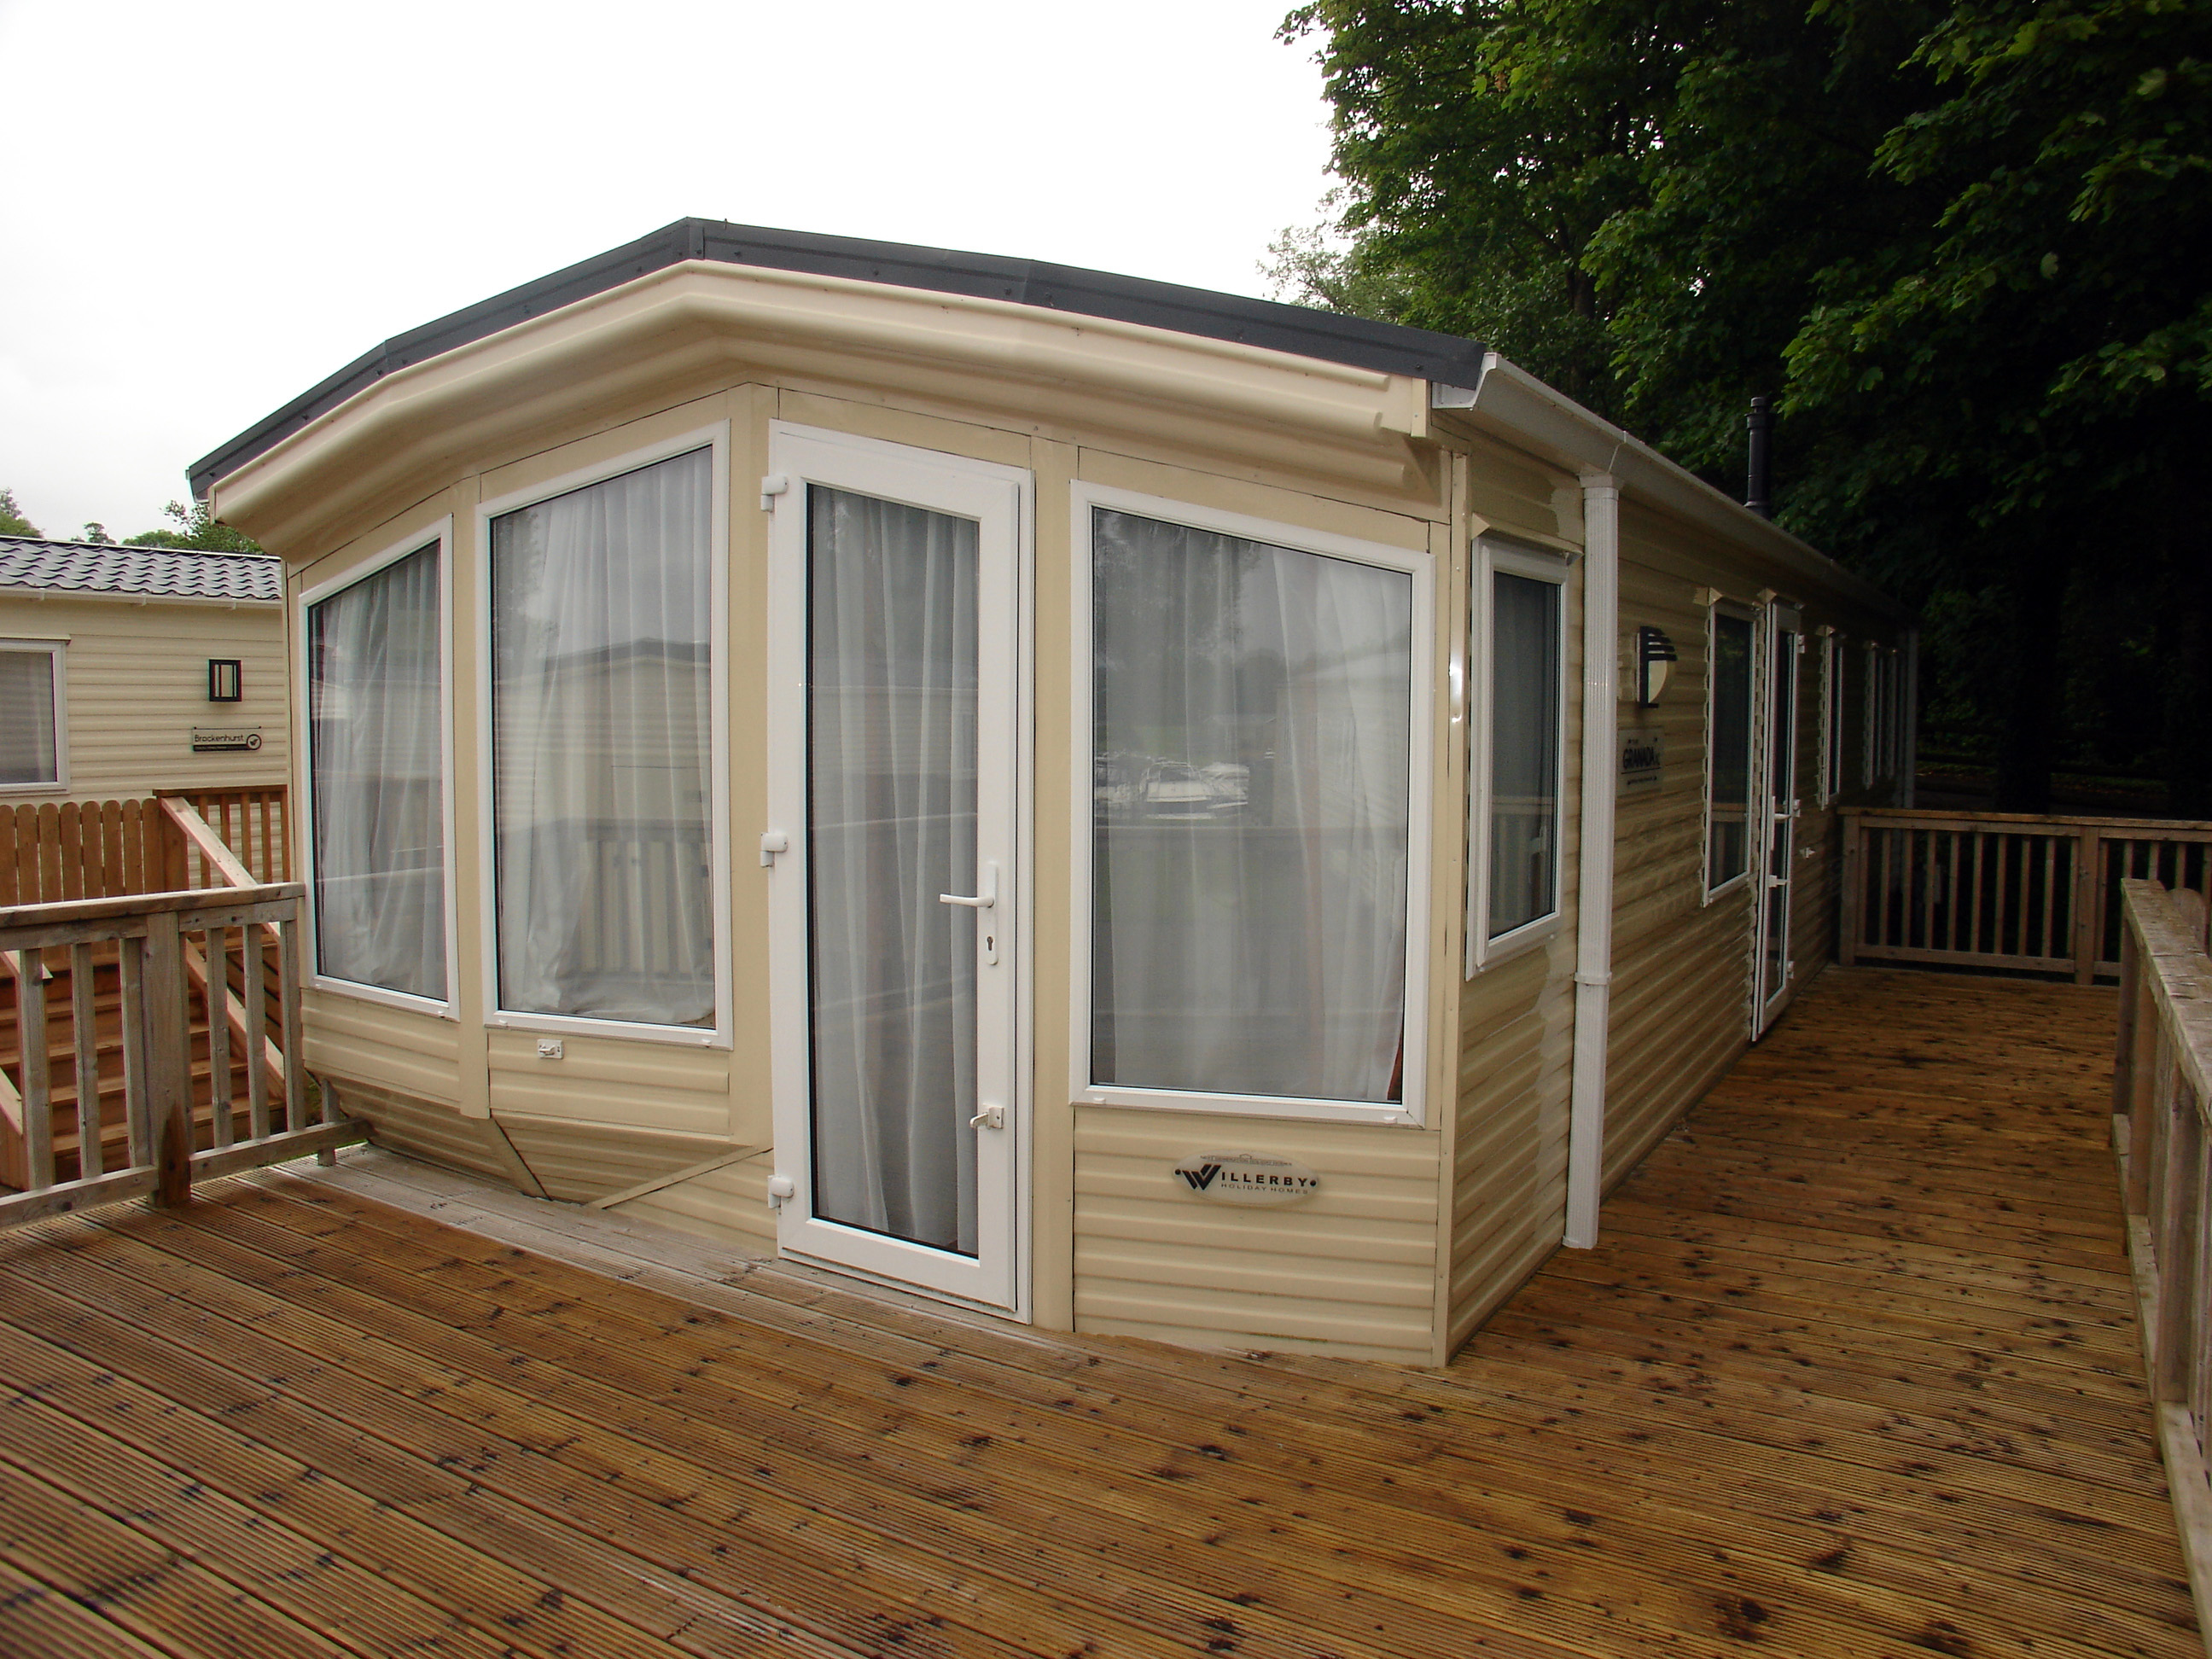 Luxury Caravans All Sections For Sale In Ireland  DoneDealie